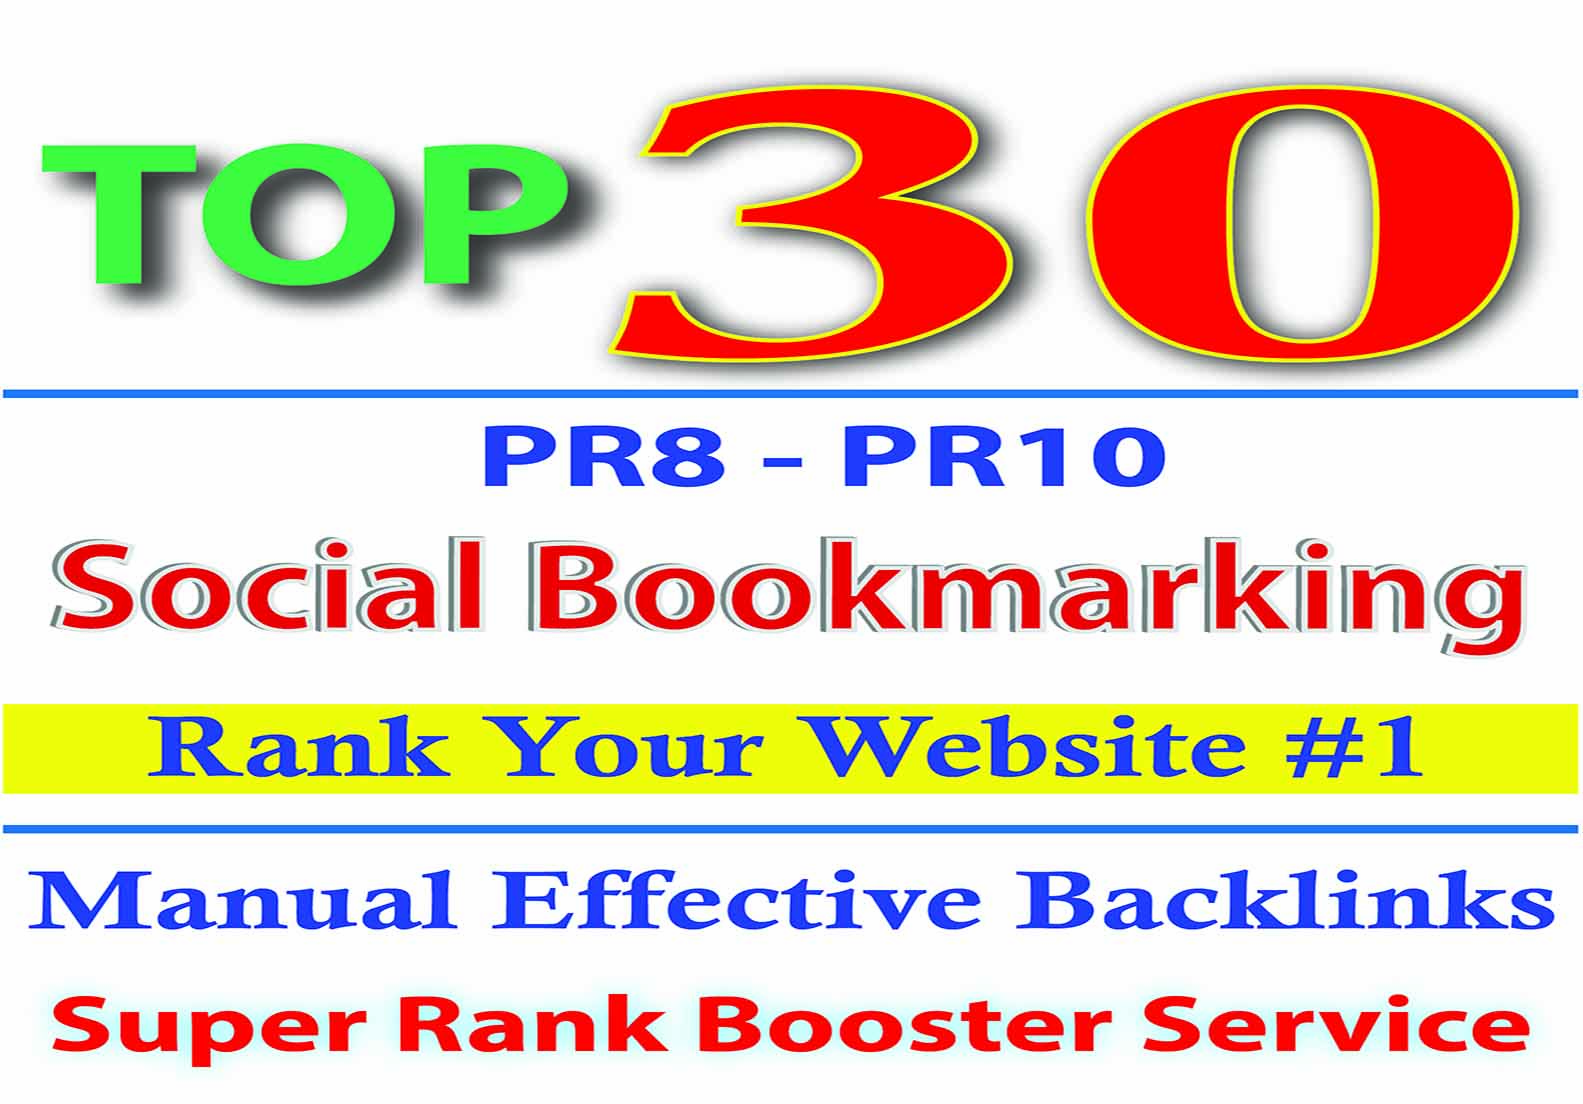 Manual SEO Social Bookmarking Contextual Authority 30 Super Backlinks to get Google 1 ranking